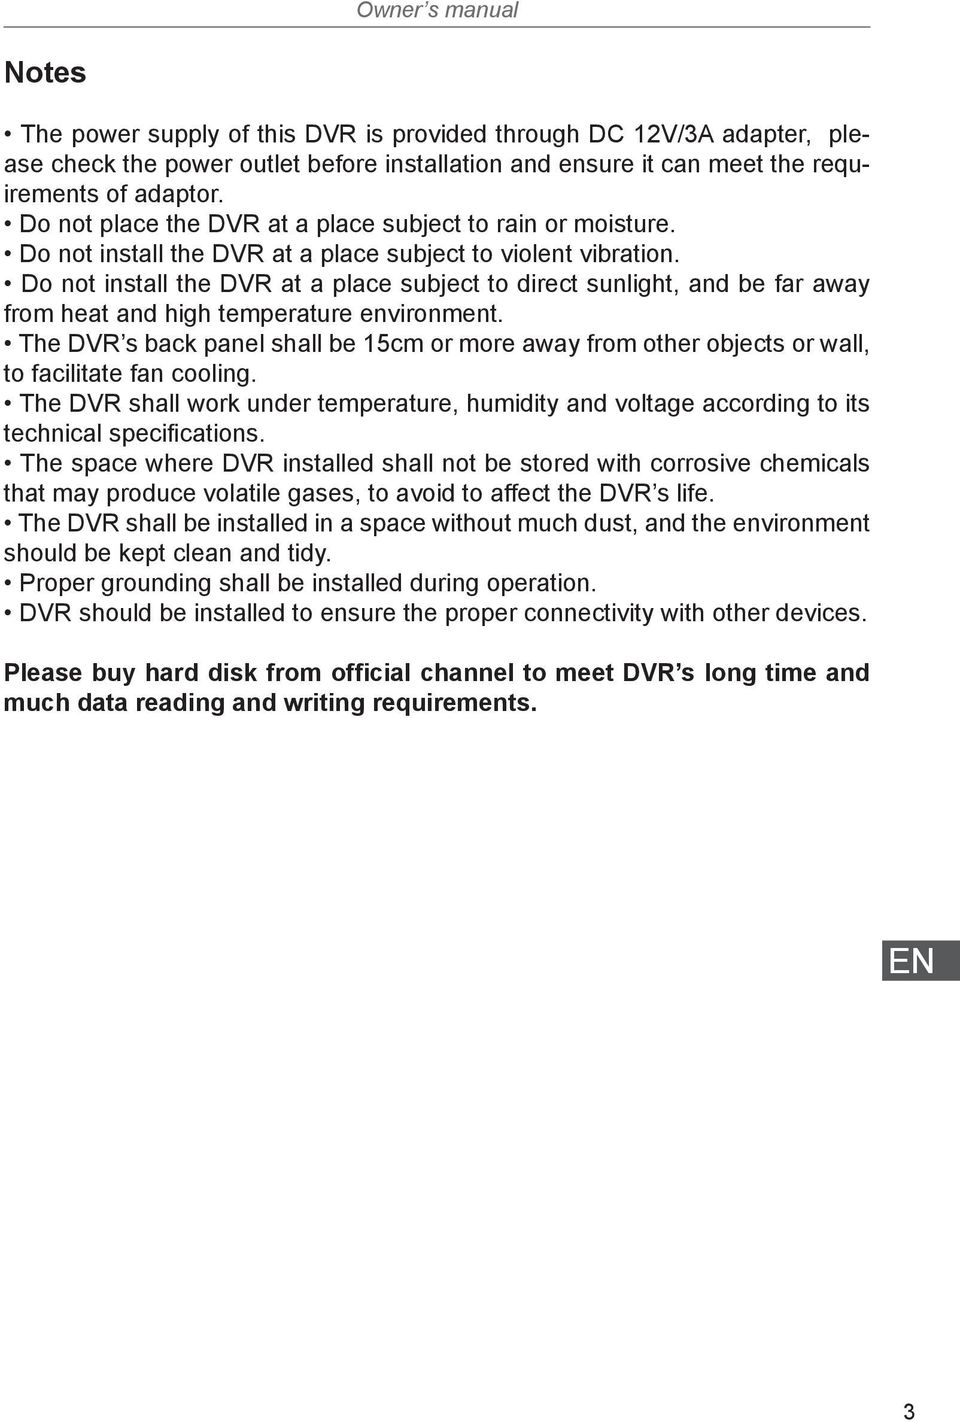 Do not install the DVR at a place subject to direct sunlight, and be far away from heat and high temperature environment.